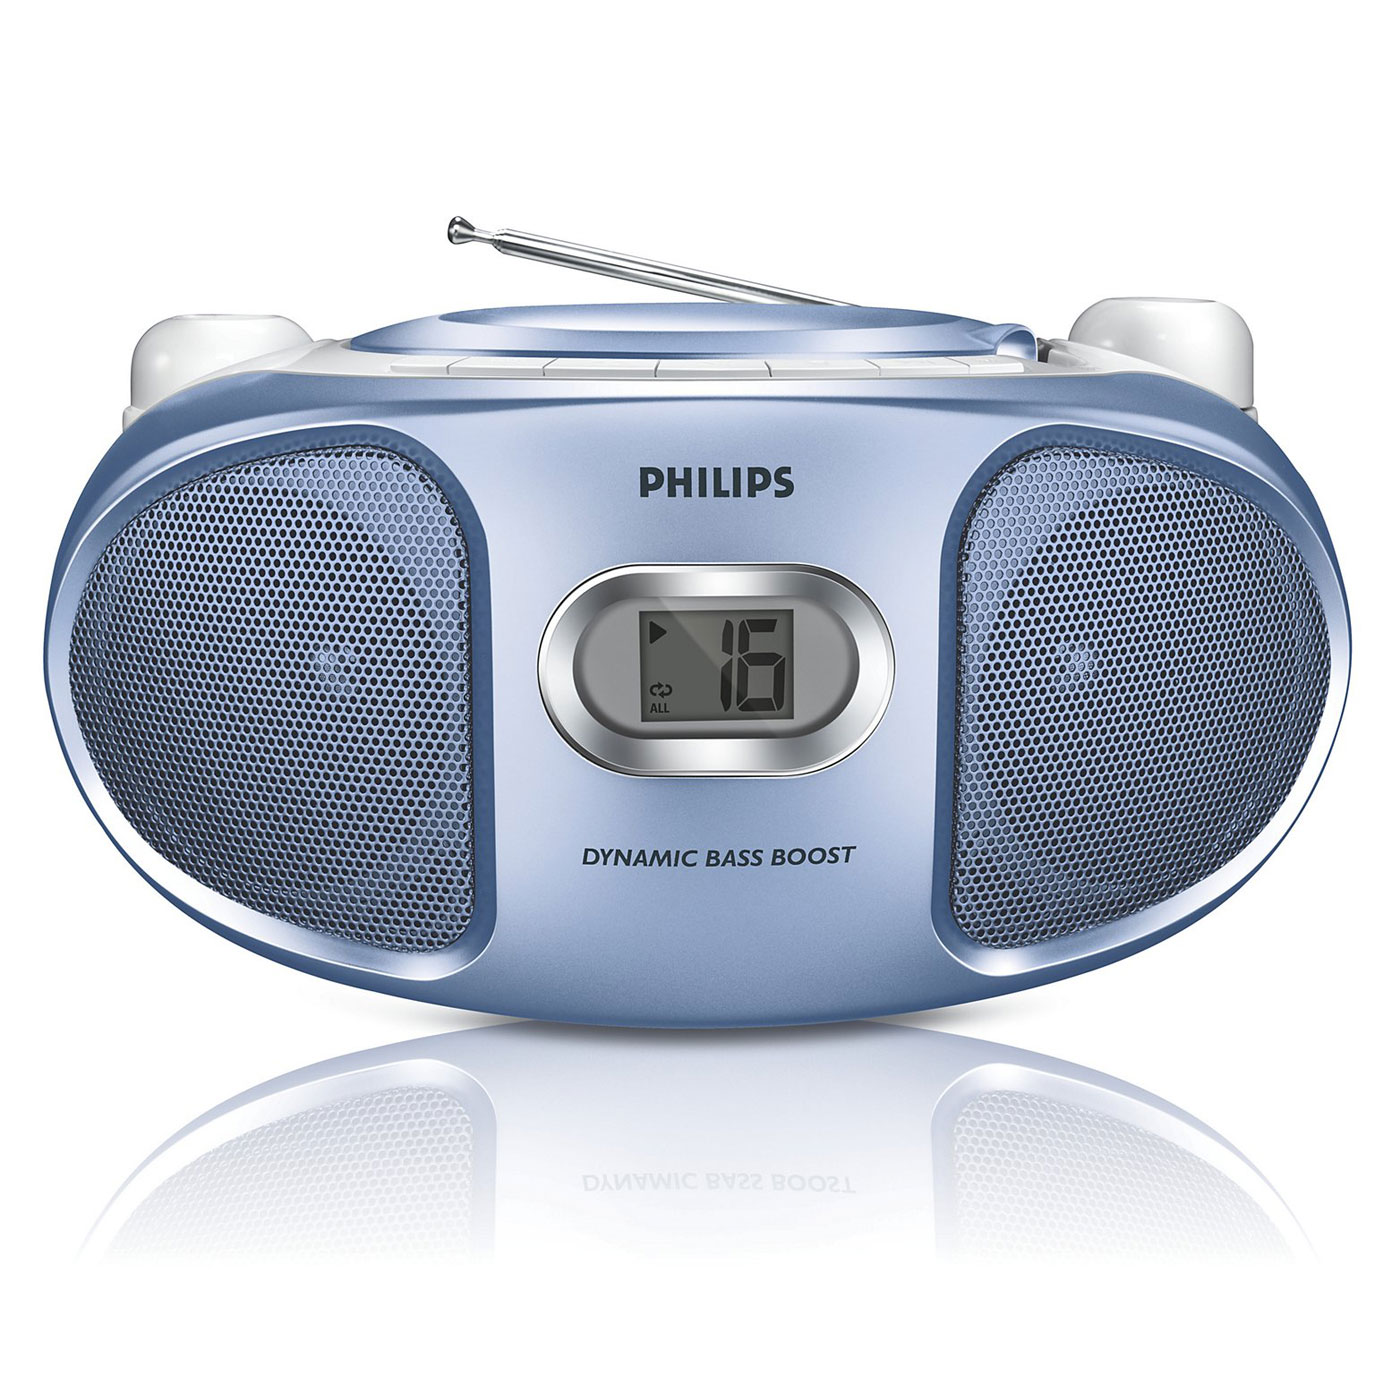 philips az105 bleu radio radio r veil philips sur ldlc. Black Bedroom Furniture Sets. Home Design Ideas